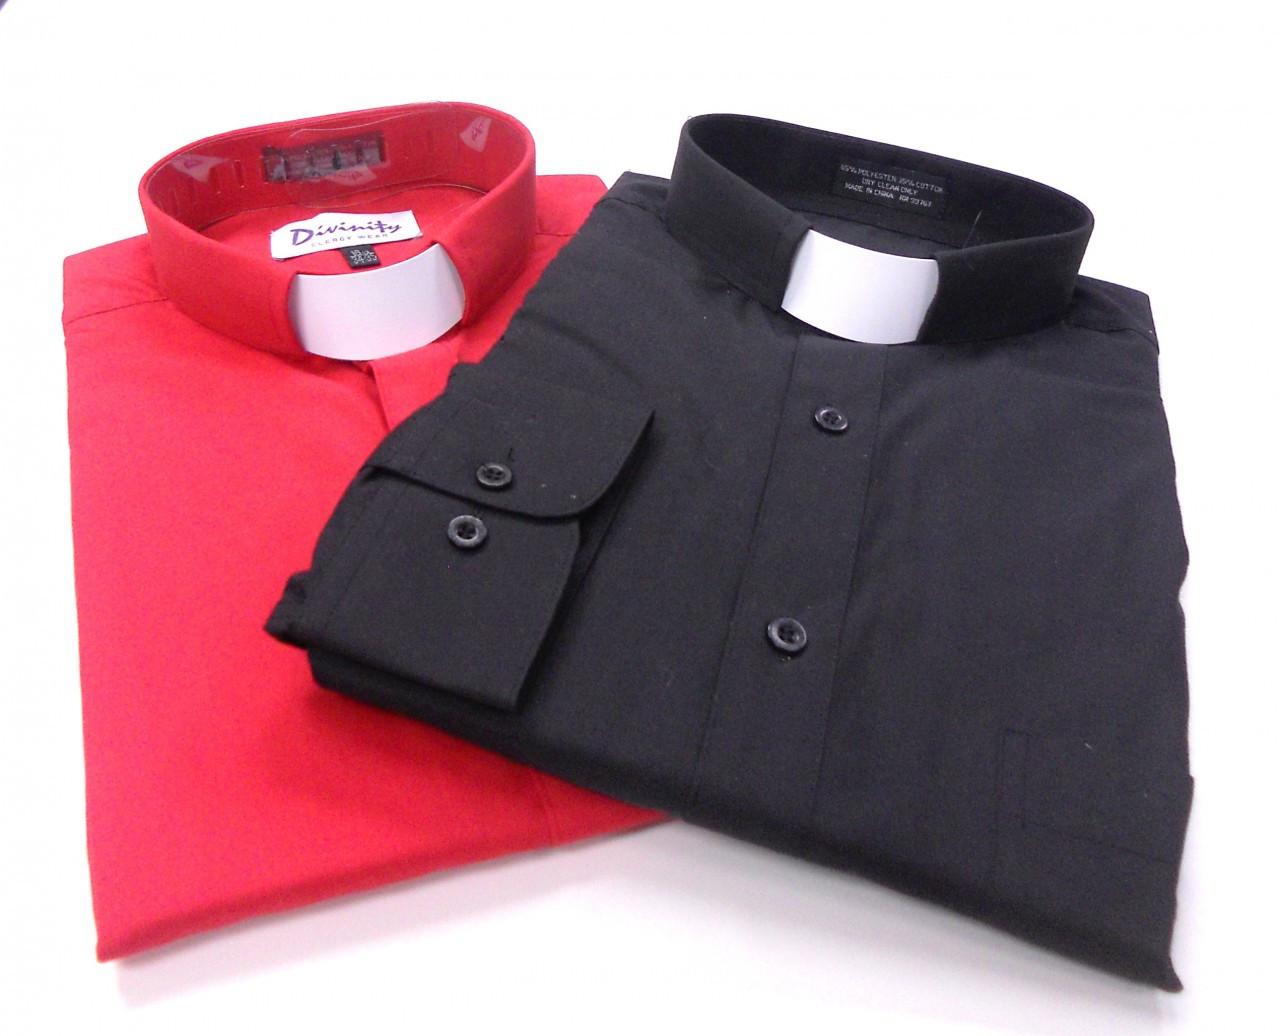 Divinity Clergy Wear Sale On 2 Tab Collar Clergy Shirts